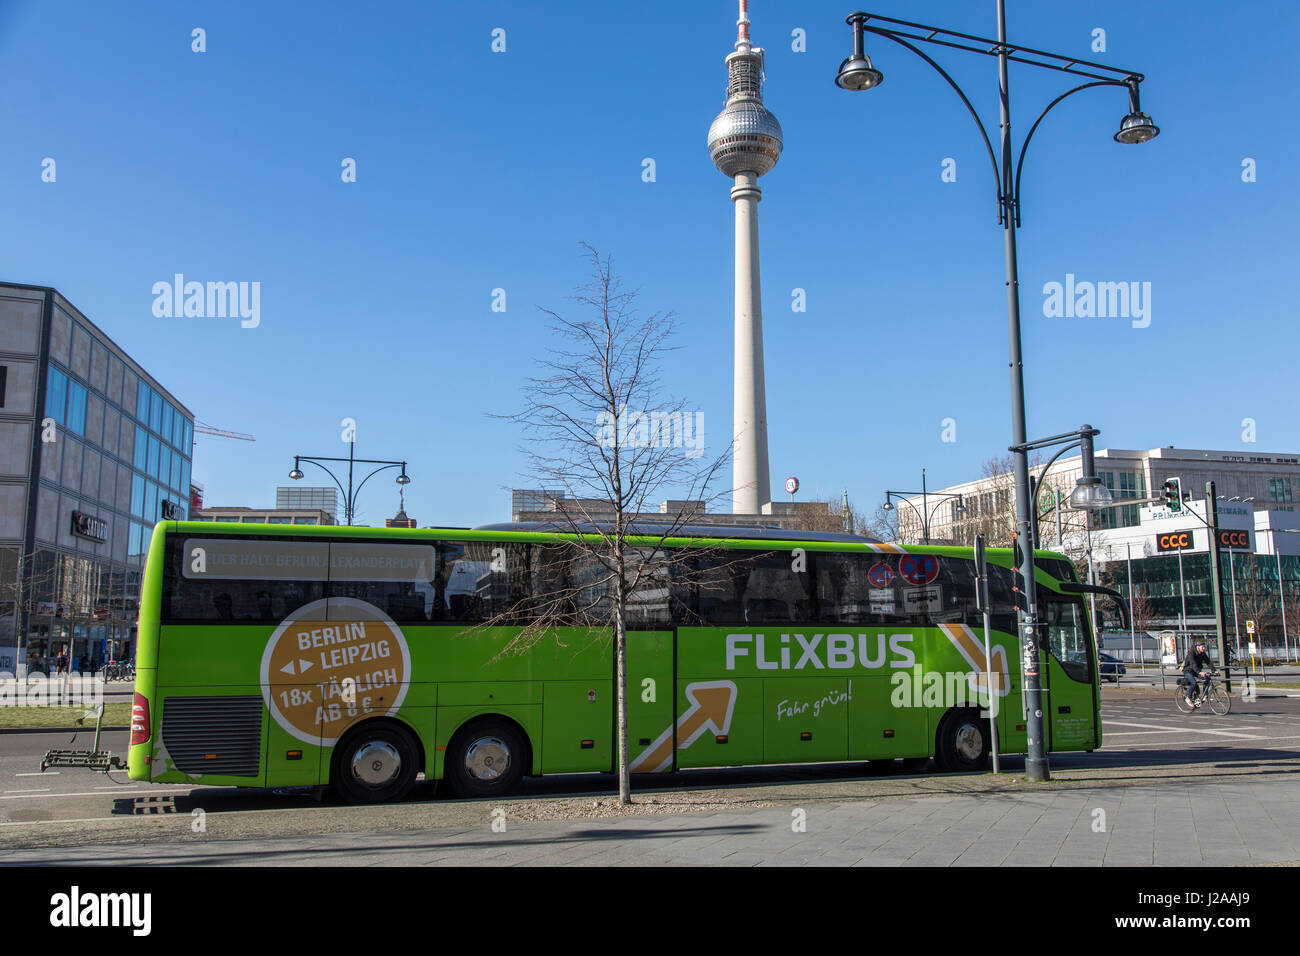 flixbus stockfotos flixbus bilder alamy. Black Bedroom Furniture Sets. Home Design Ideas